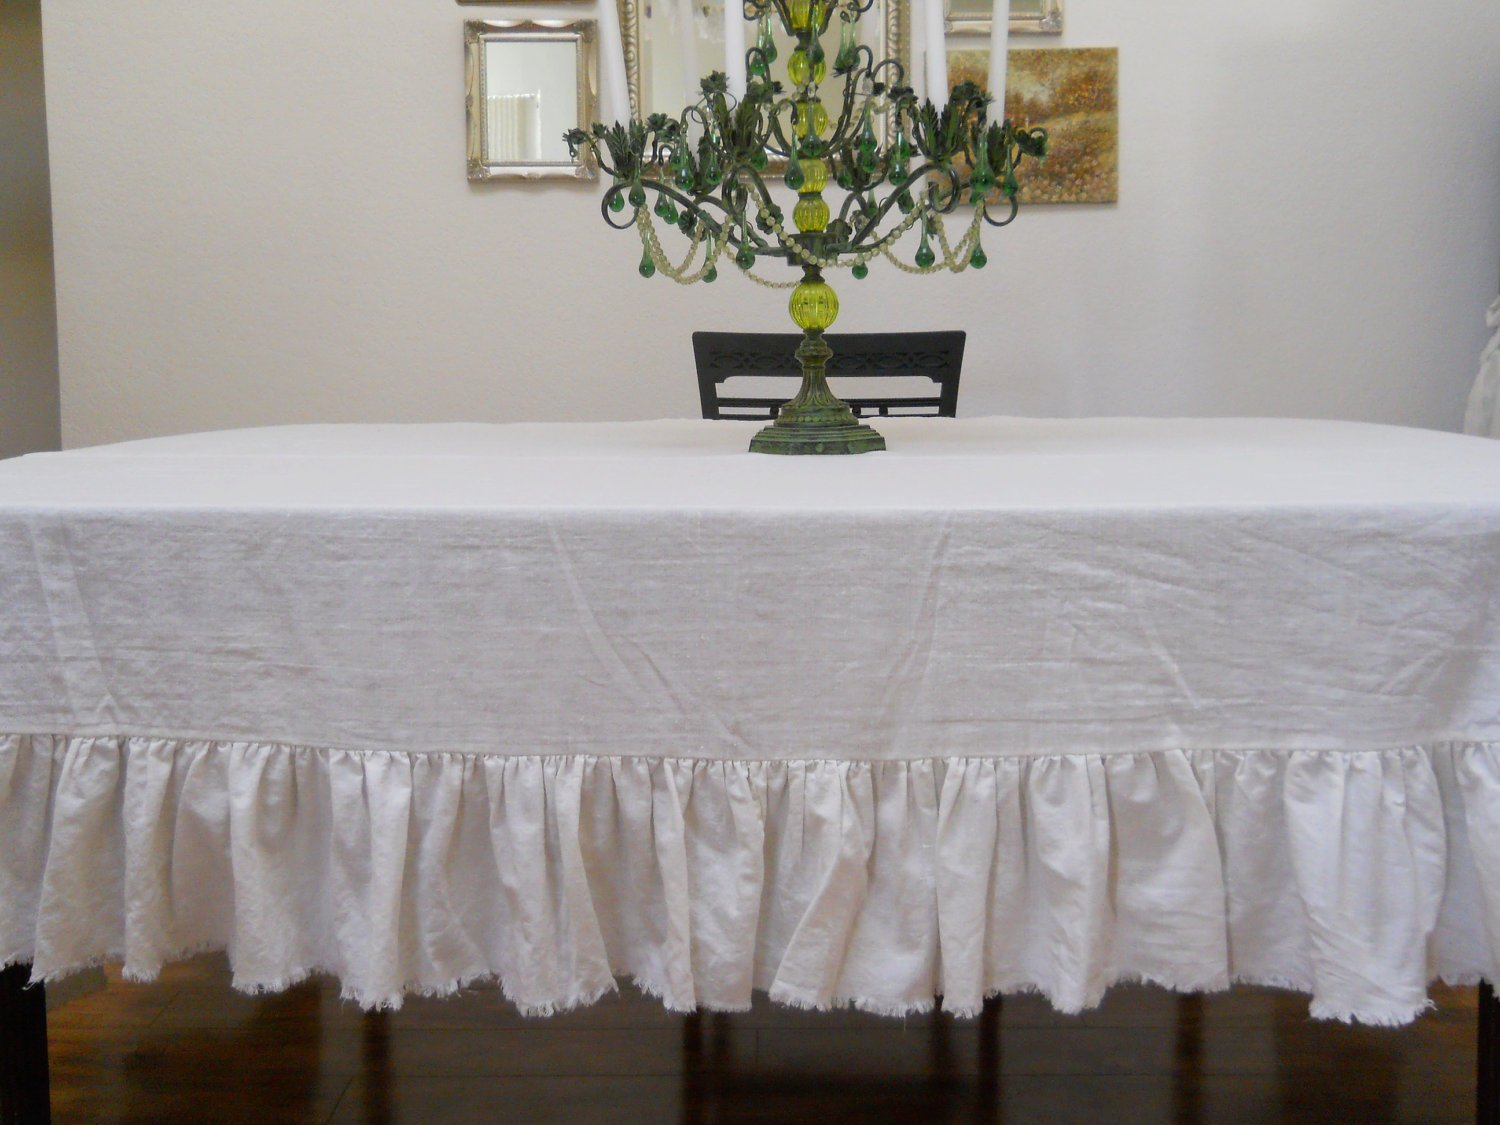 Amazon.com: Off White Linen Table Cloth (With Frayed Ruffle): Home U0026 Kitchen